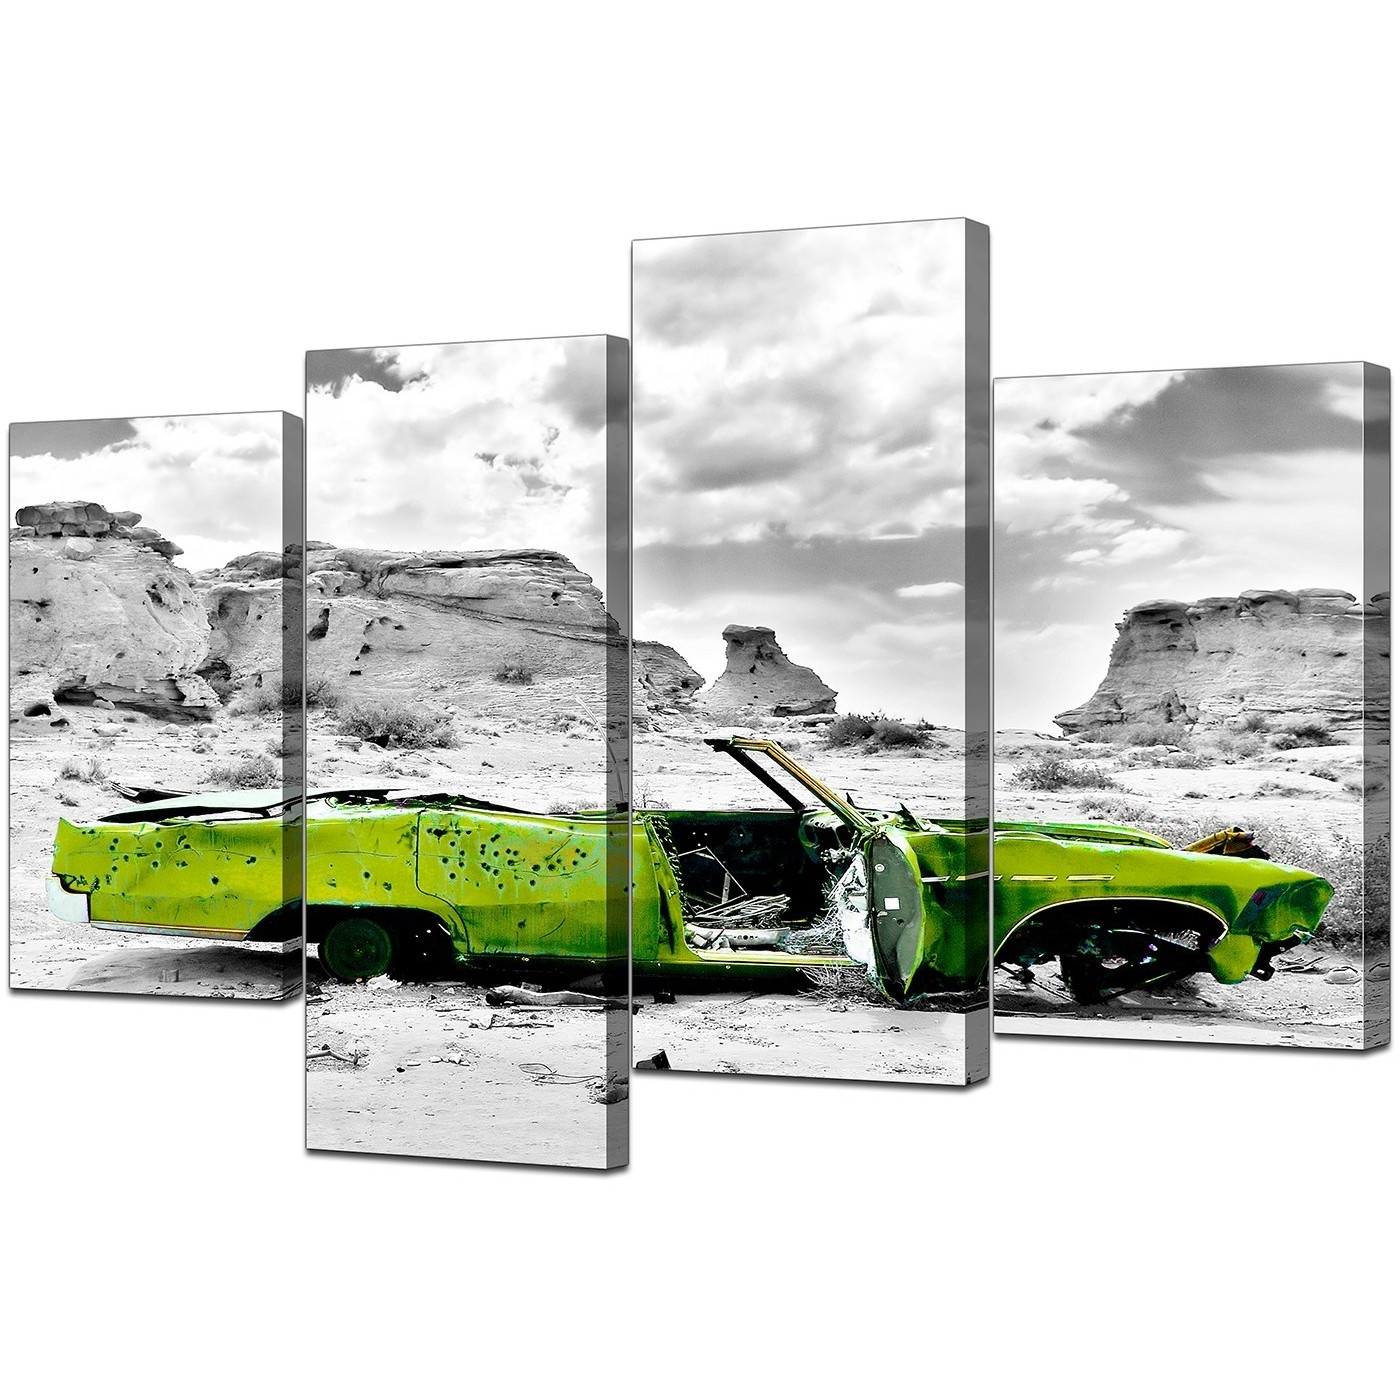 Lime Green Abstract Wall Art Regarding Preferred Canvas Art Of Green Car In Black & White For Your Office (View 10 of 15)